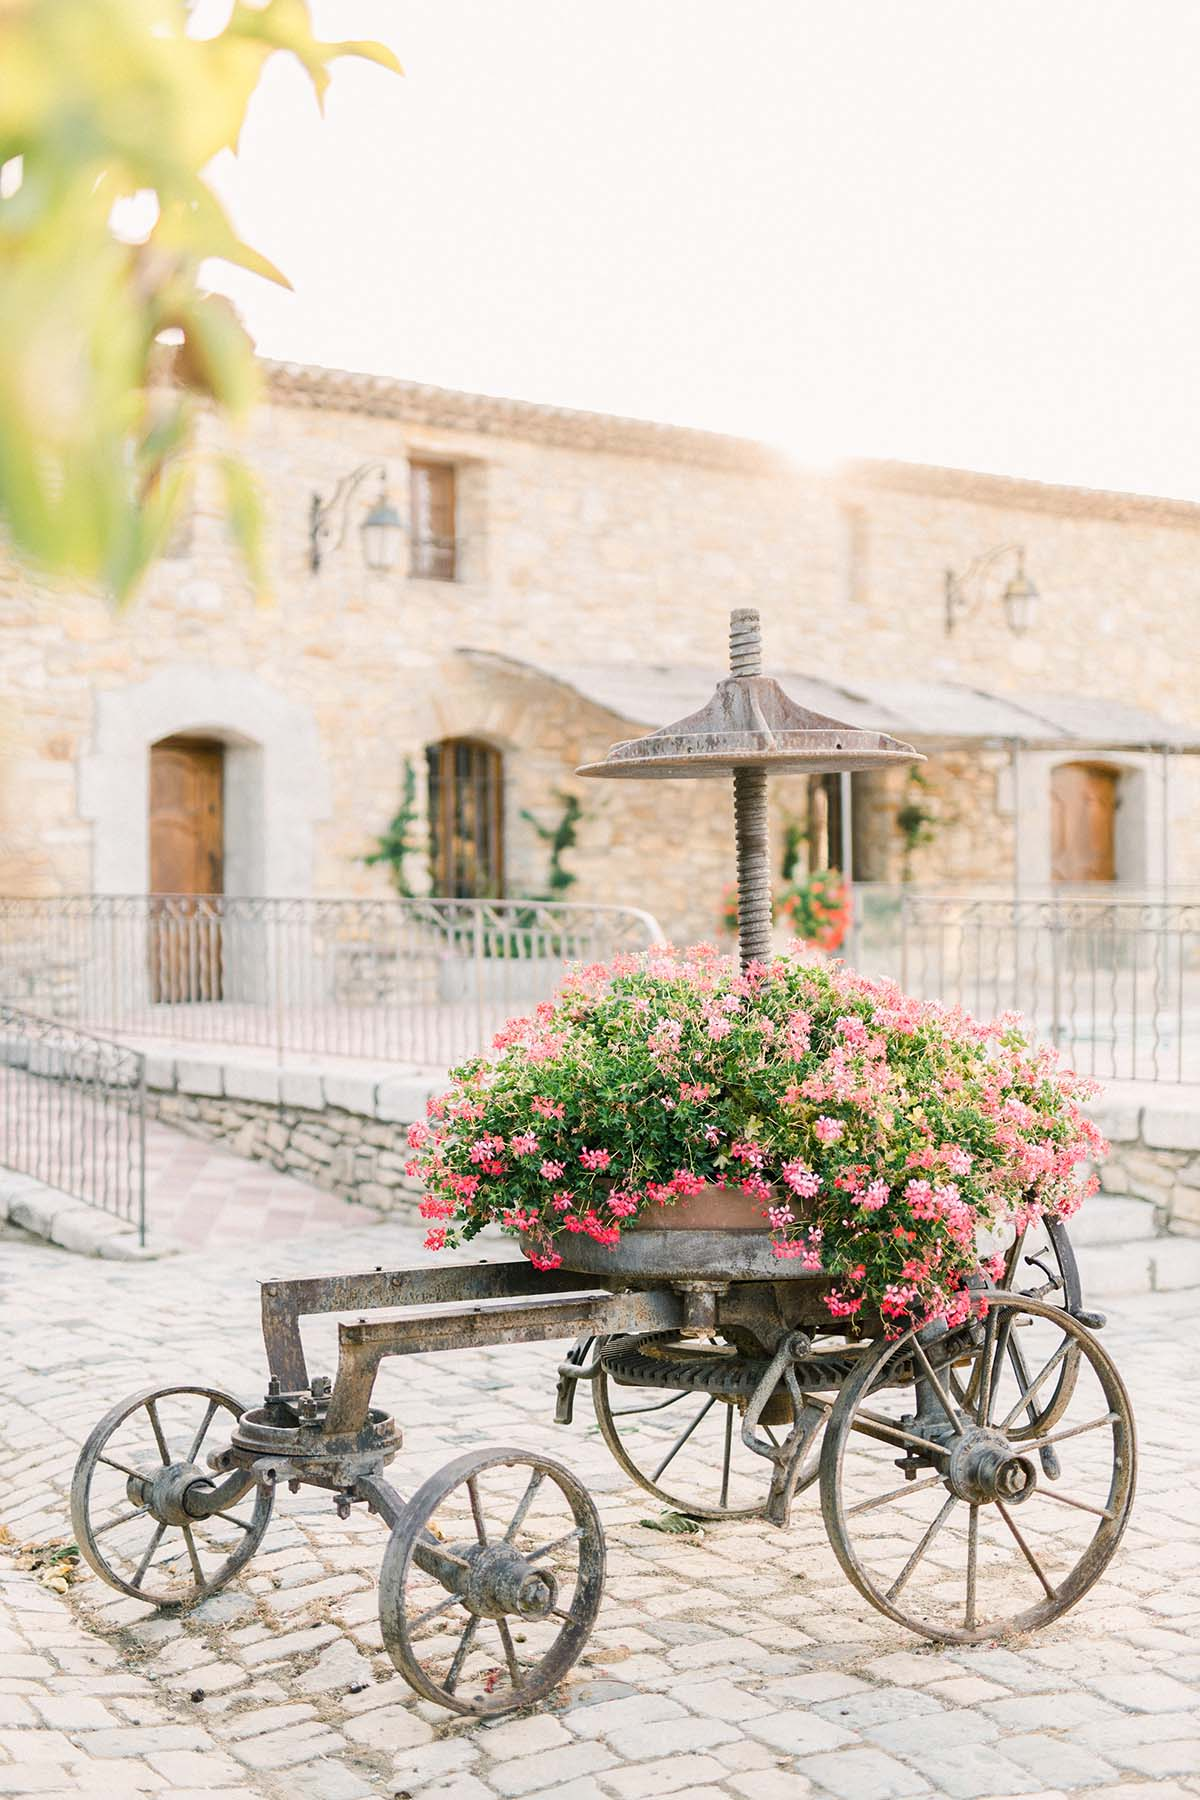 photographe-mariage-provence-domaine-du-gros-nore-gros'nore